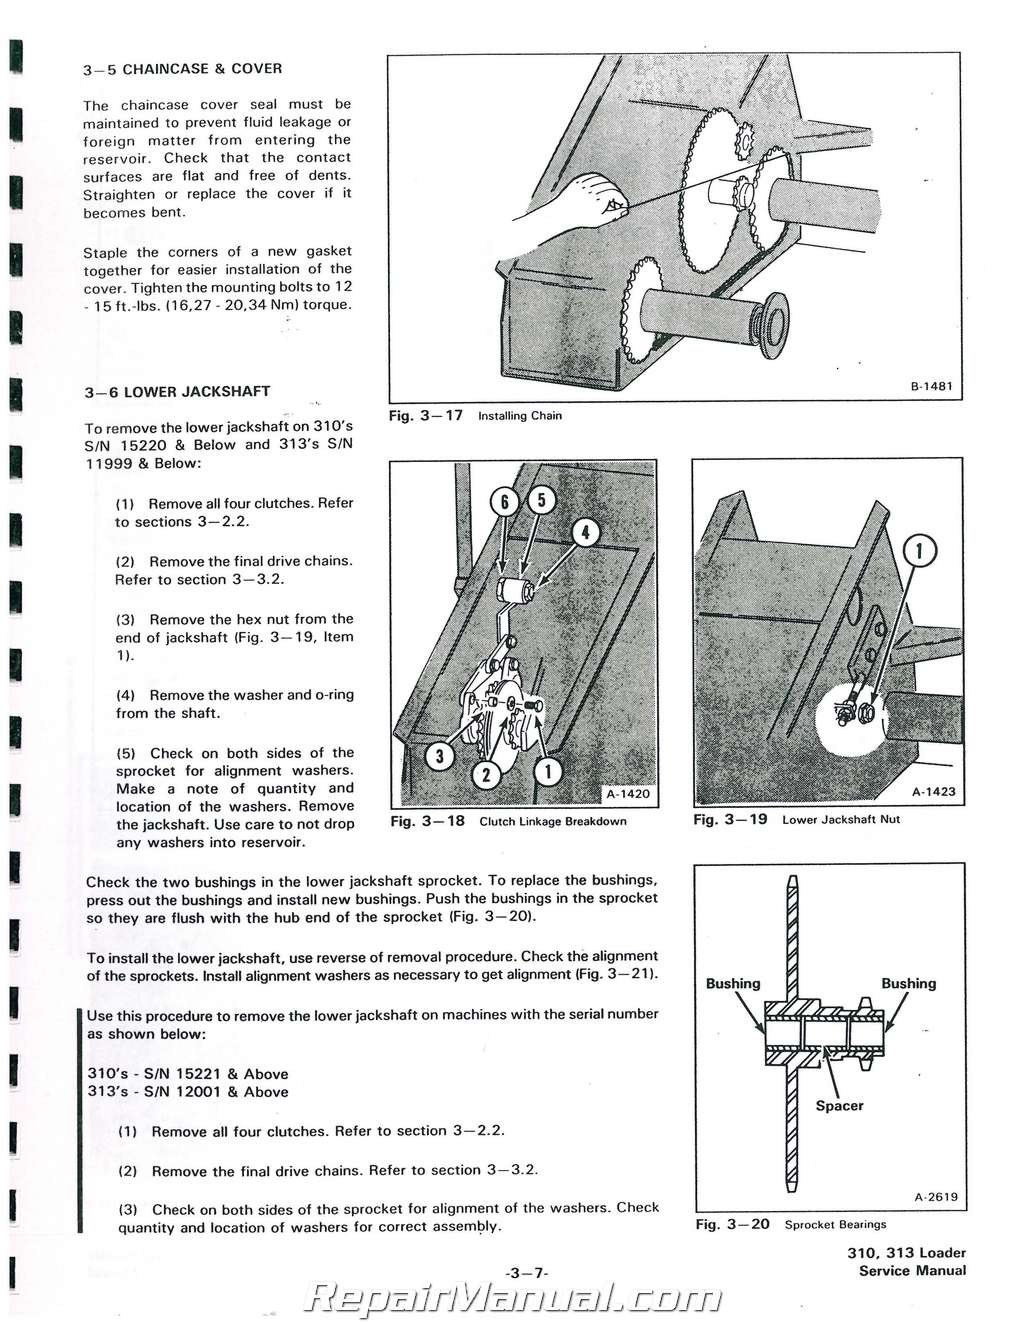 Wiring Diagram For Bobcat 310 Reinvent Your Skid Steer Diagrams 313 371 Service Manual Rh Repairmanual Com Mower